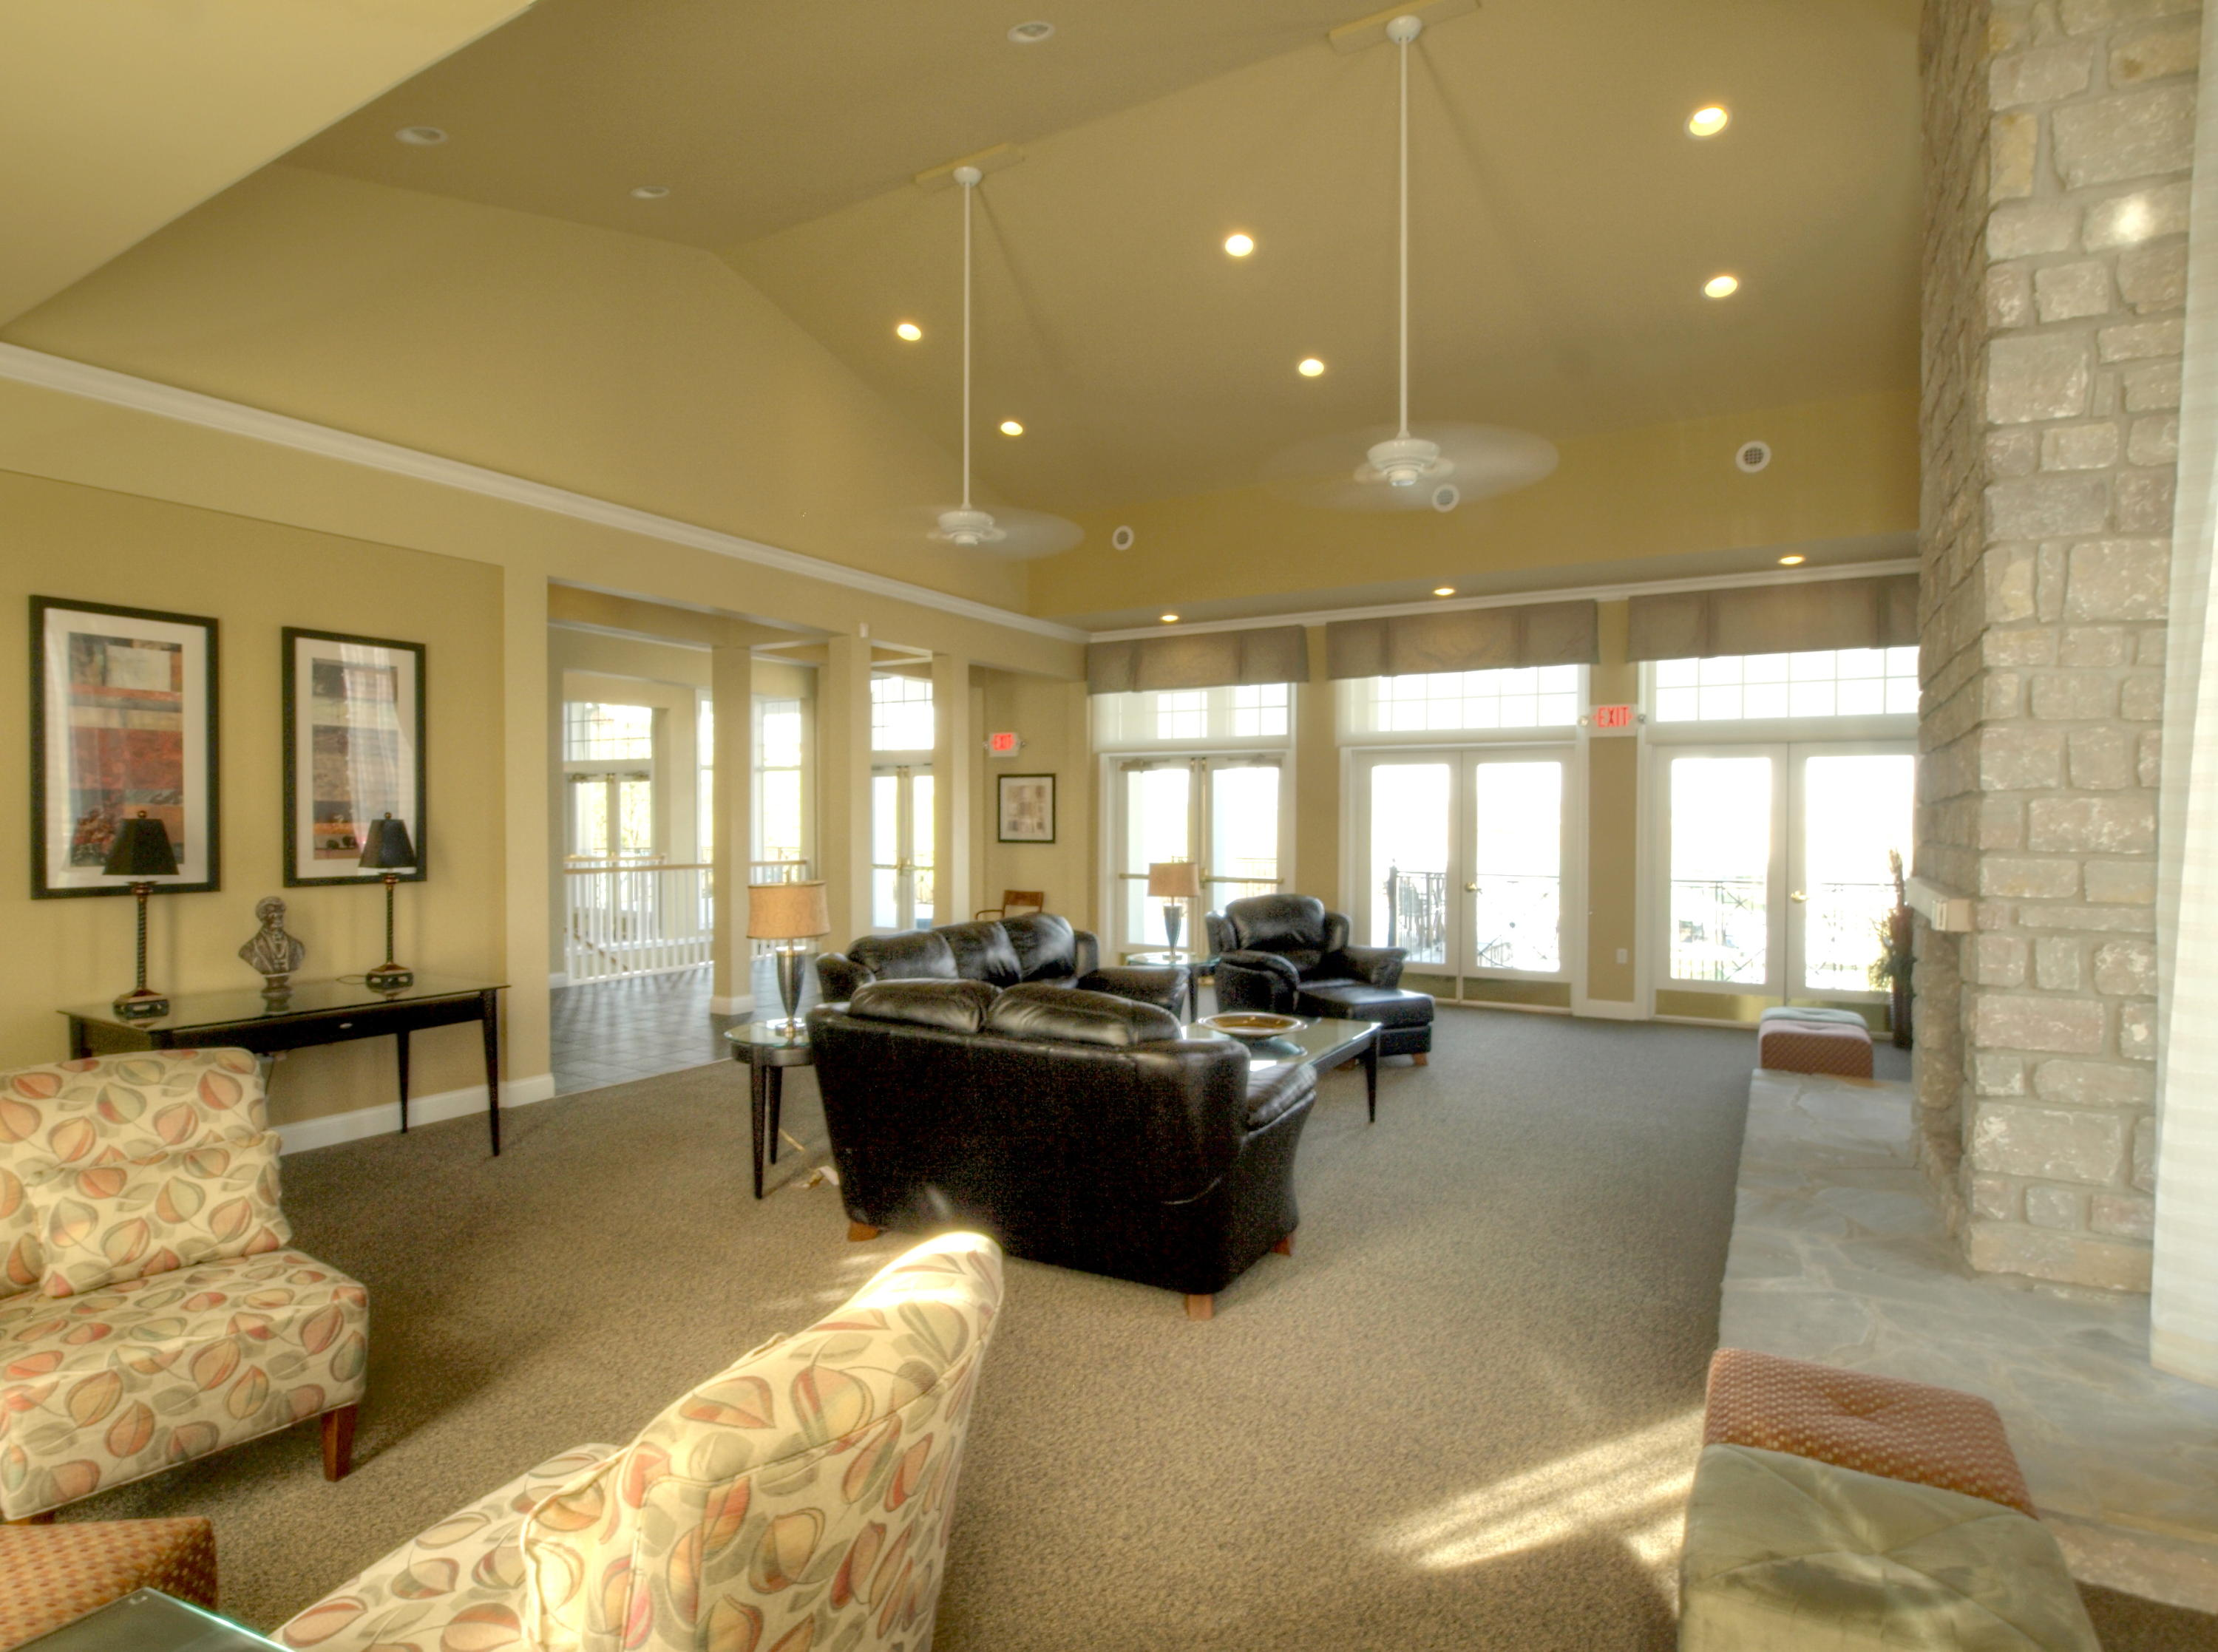 Lot 775 Russell Brothers Rd: